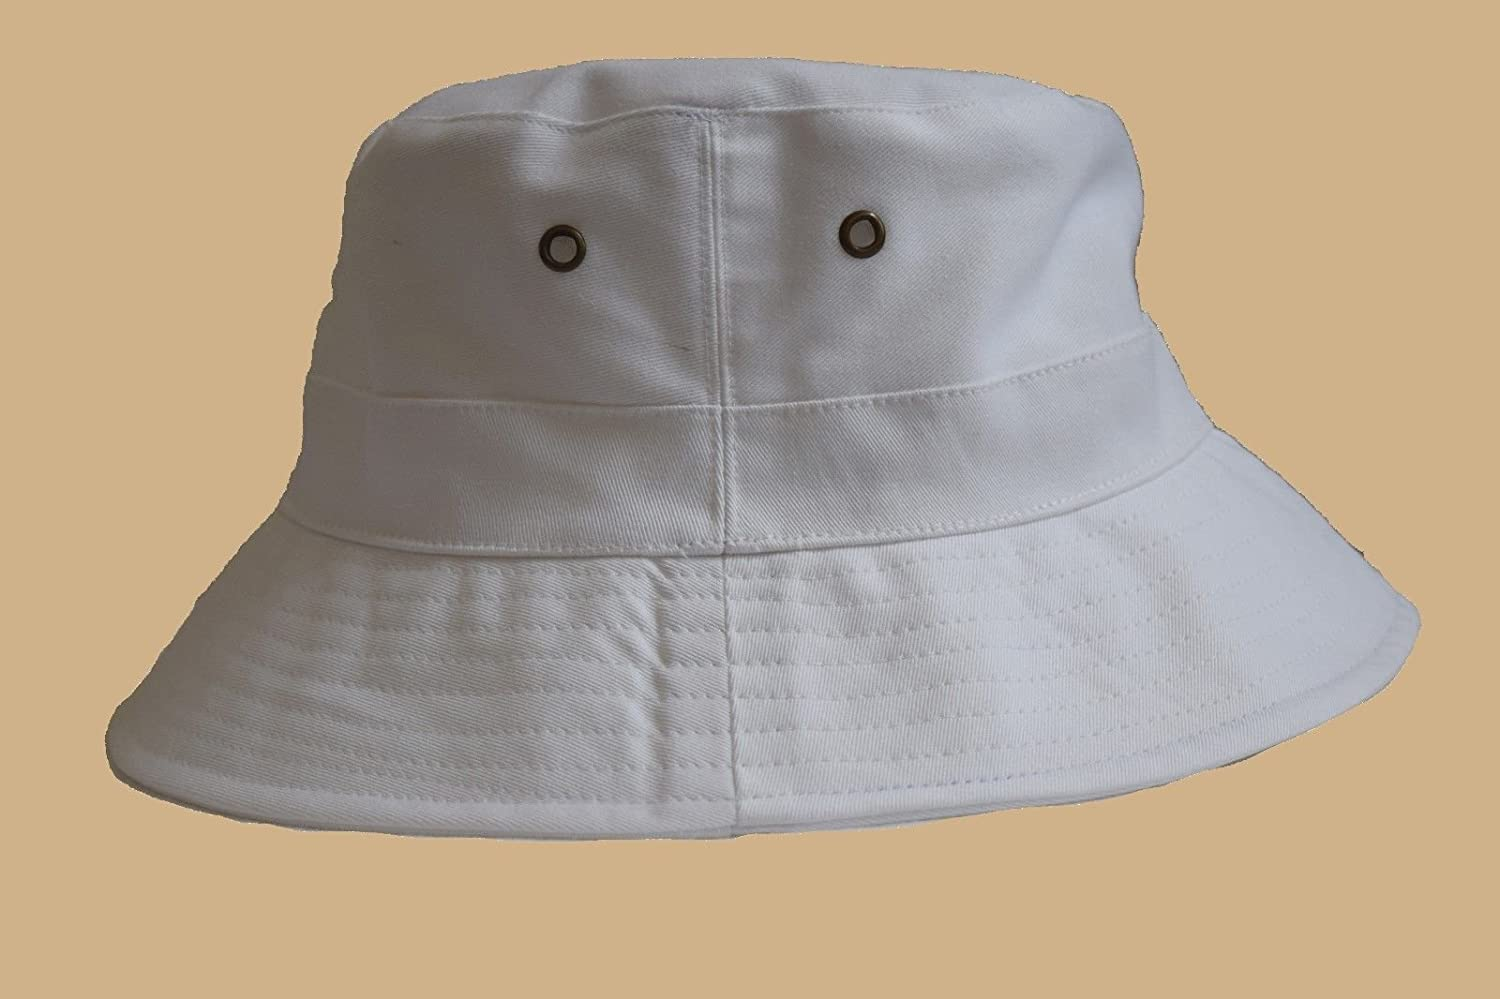 ea089b061c57e6 Amazon.com : White Bucket Hat Cap Boonie Cotton Fishing Hunting Safari Sun  Men Women Brim : Baby